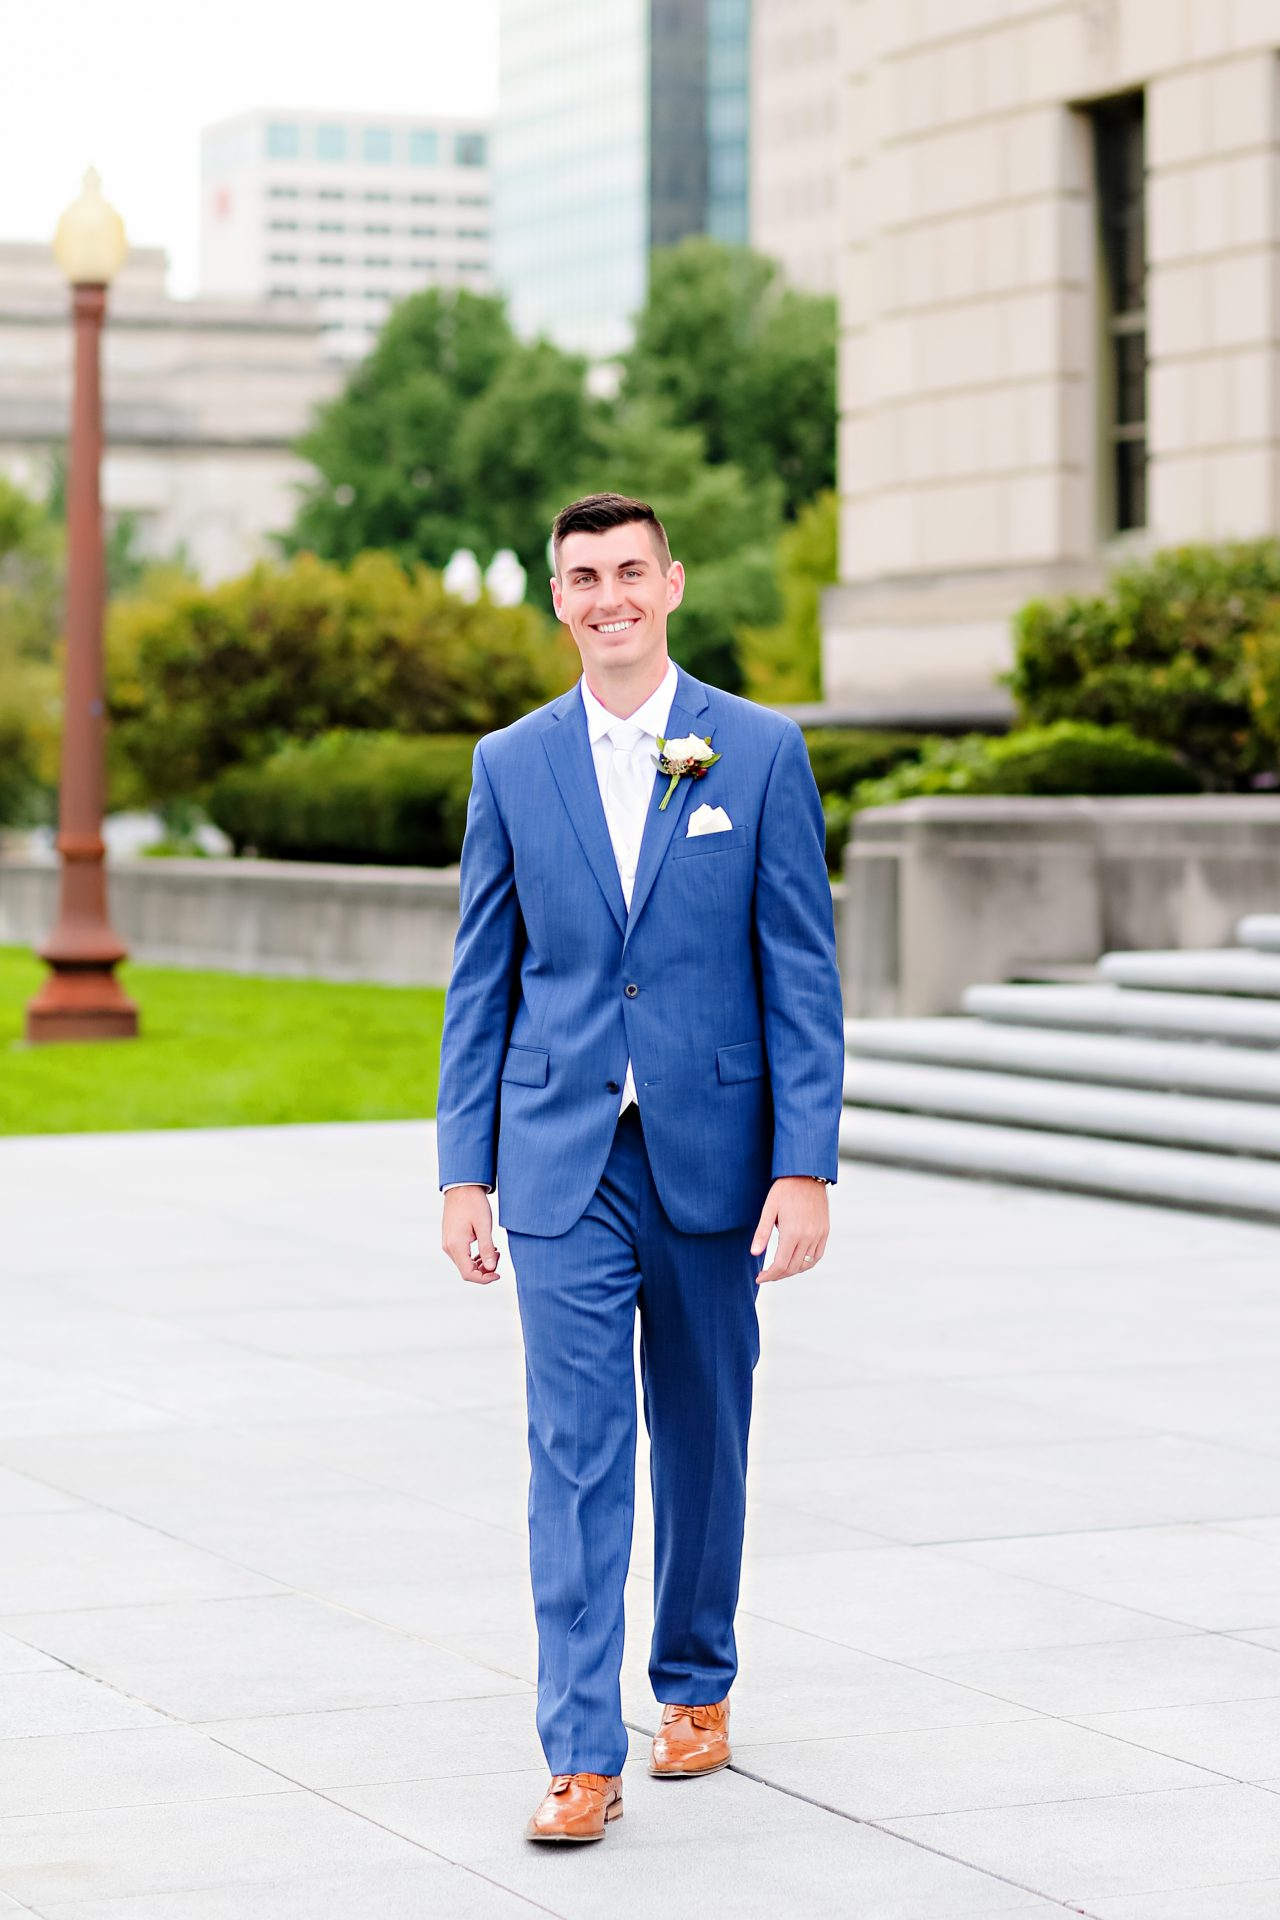 Jordan Ryan Indiana Roof Ballroom Wedding 223